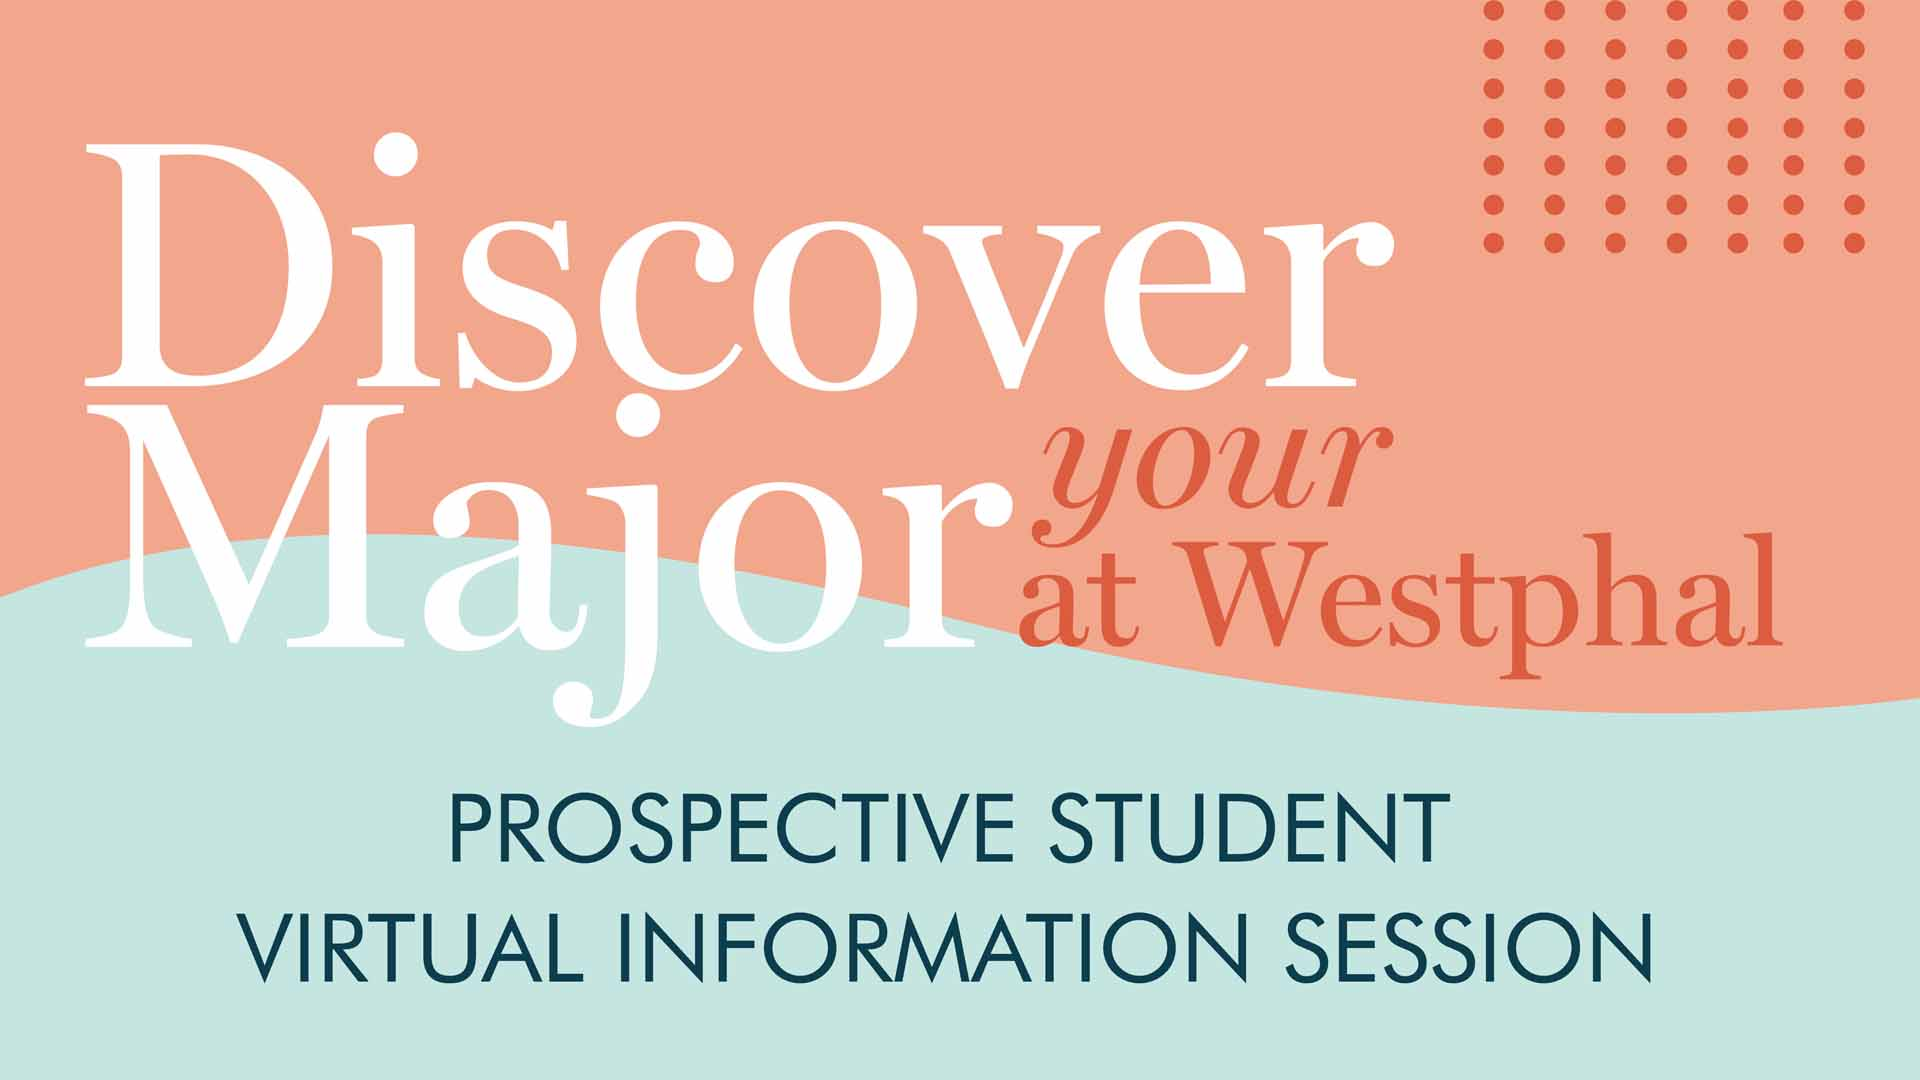 Discover your major at Westphal